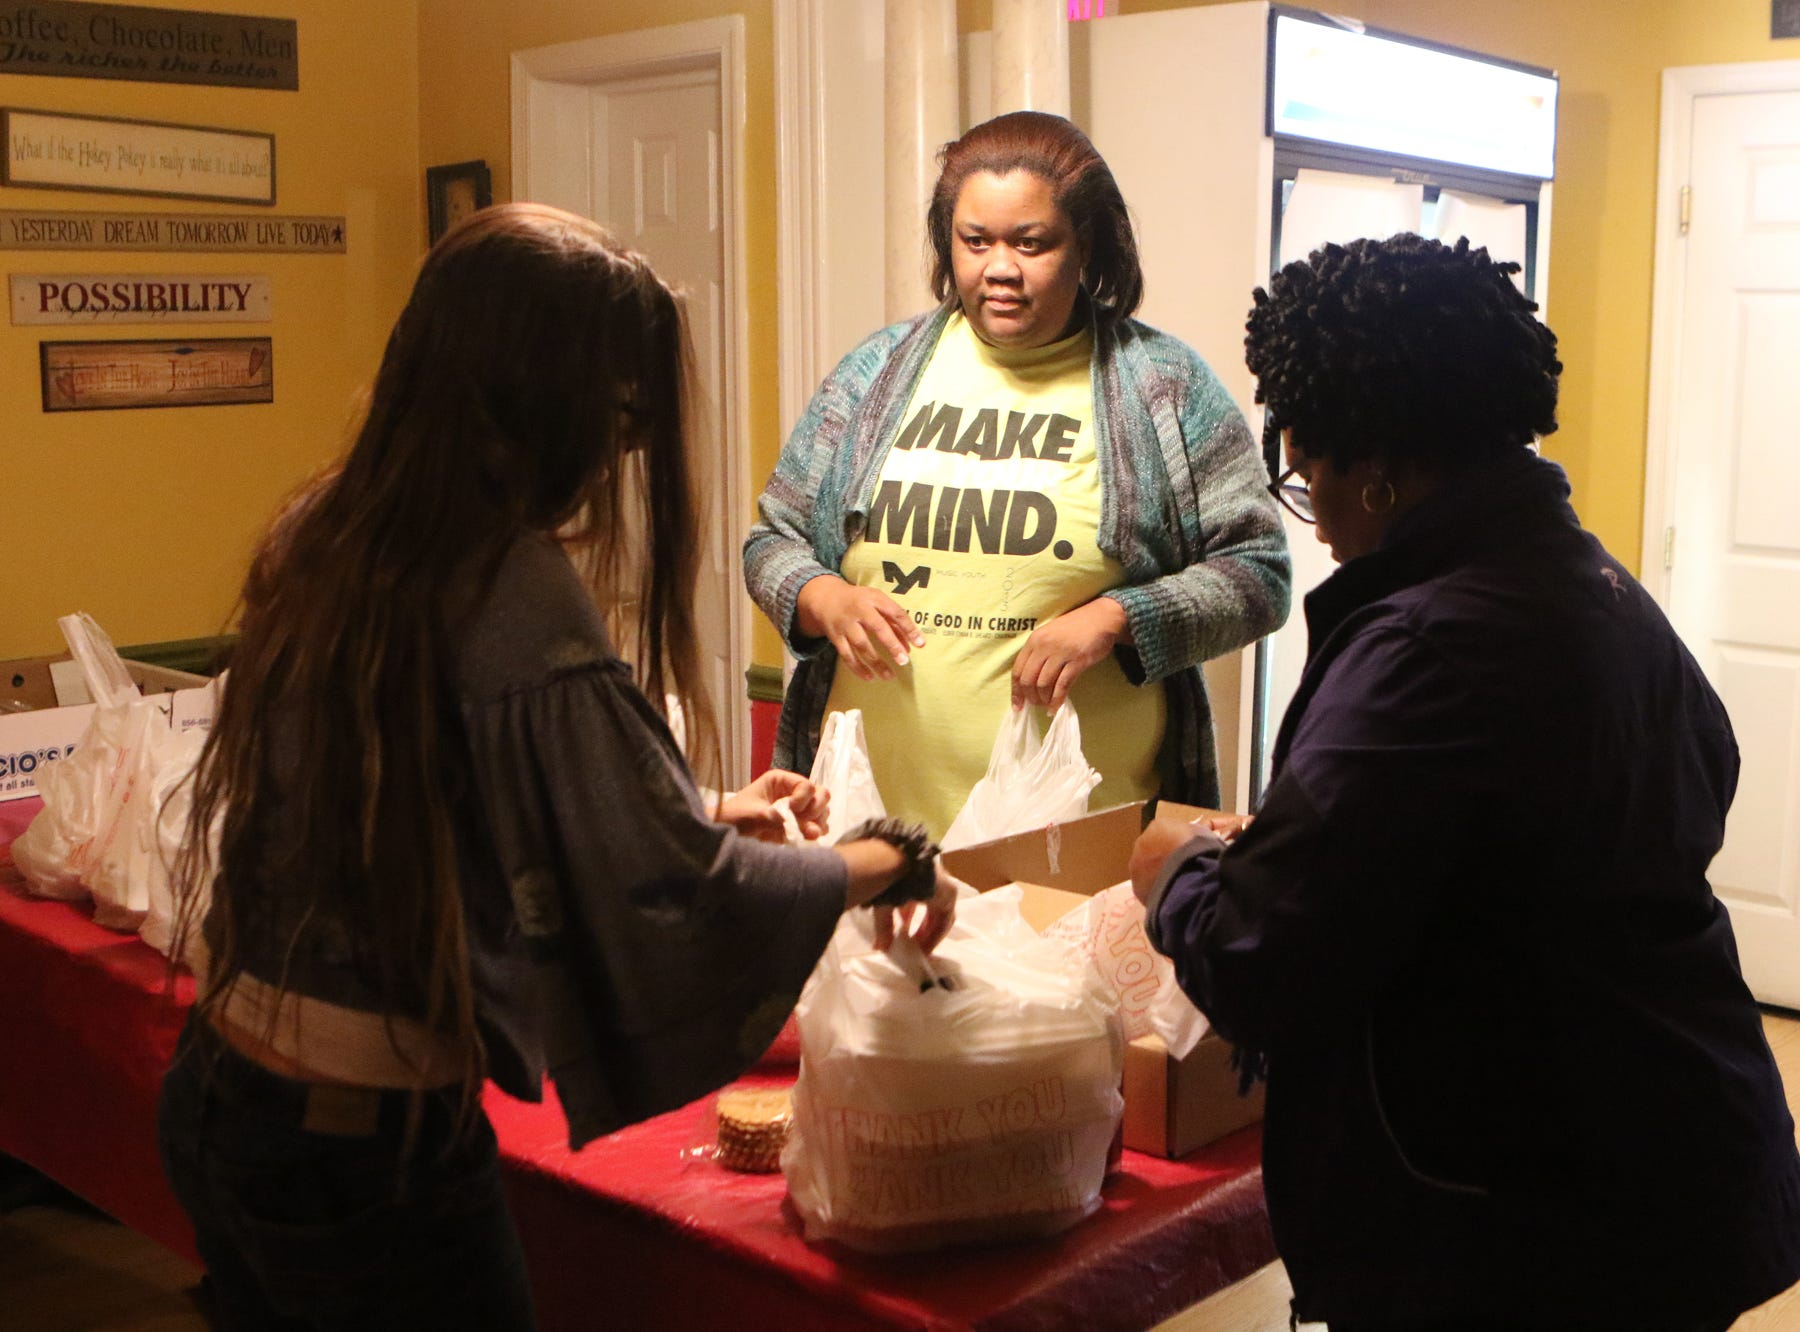 Volunteers at Simaron Pizza & Steak Shop in Dover bag turkey dinners to deliver to people in the Dover community Thursday. The owners, employees and their children helped serve Thanksgiving dinner to those who couldn't afford dinner or who were alone on the holiday.